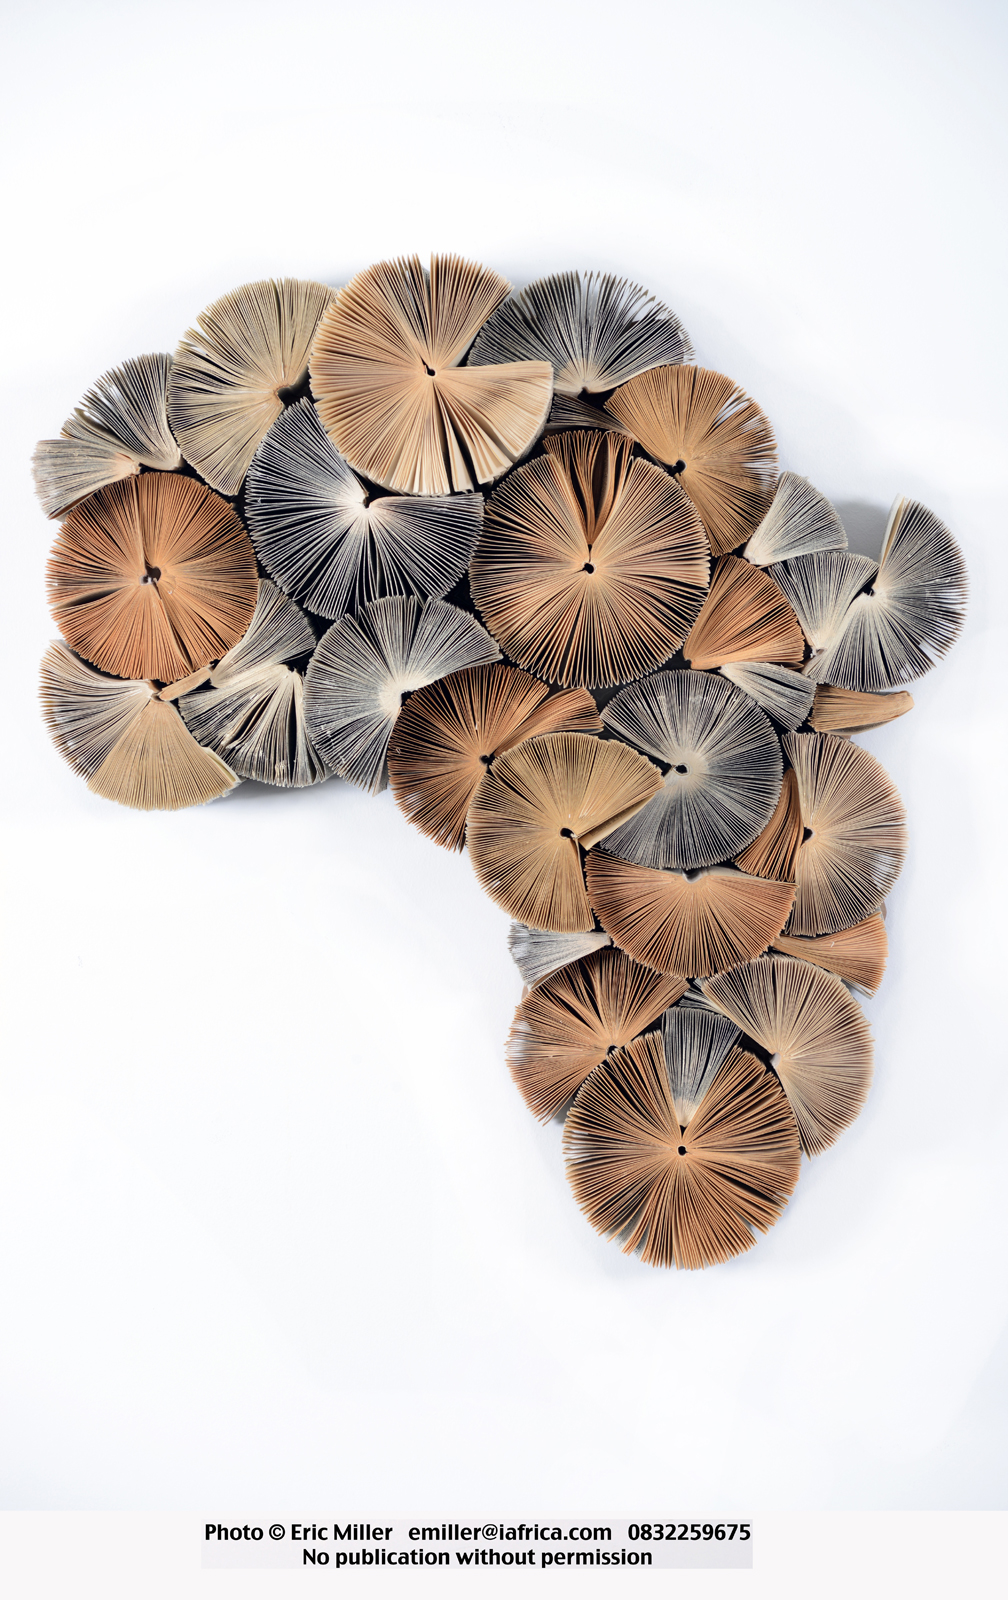 Africa Reinvented by Keri Muller for Simple Intrigue